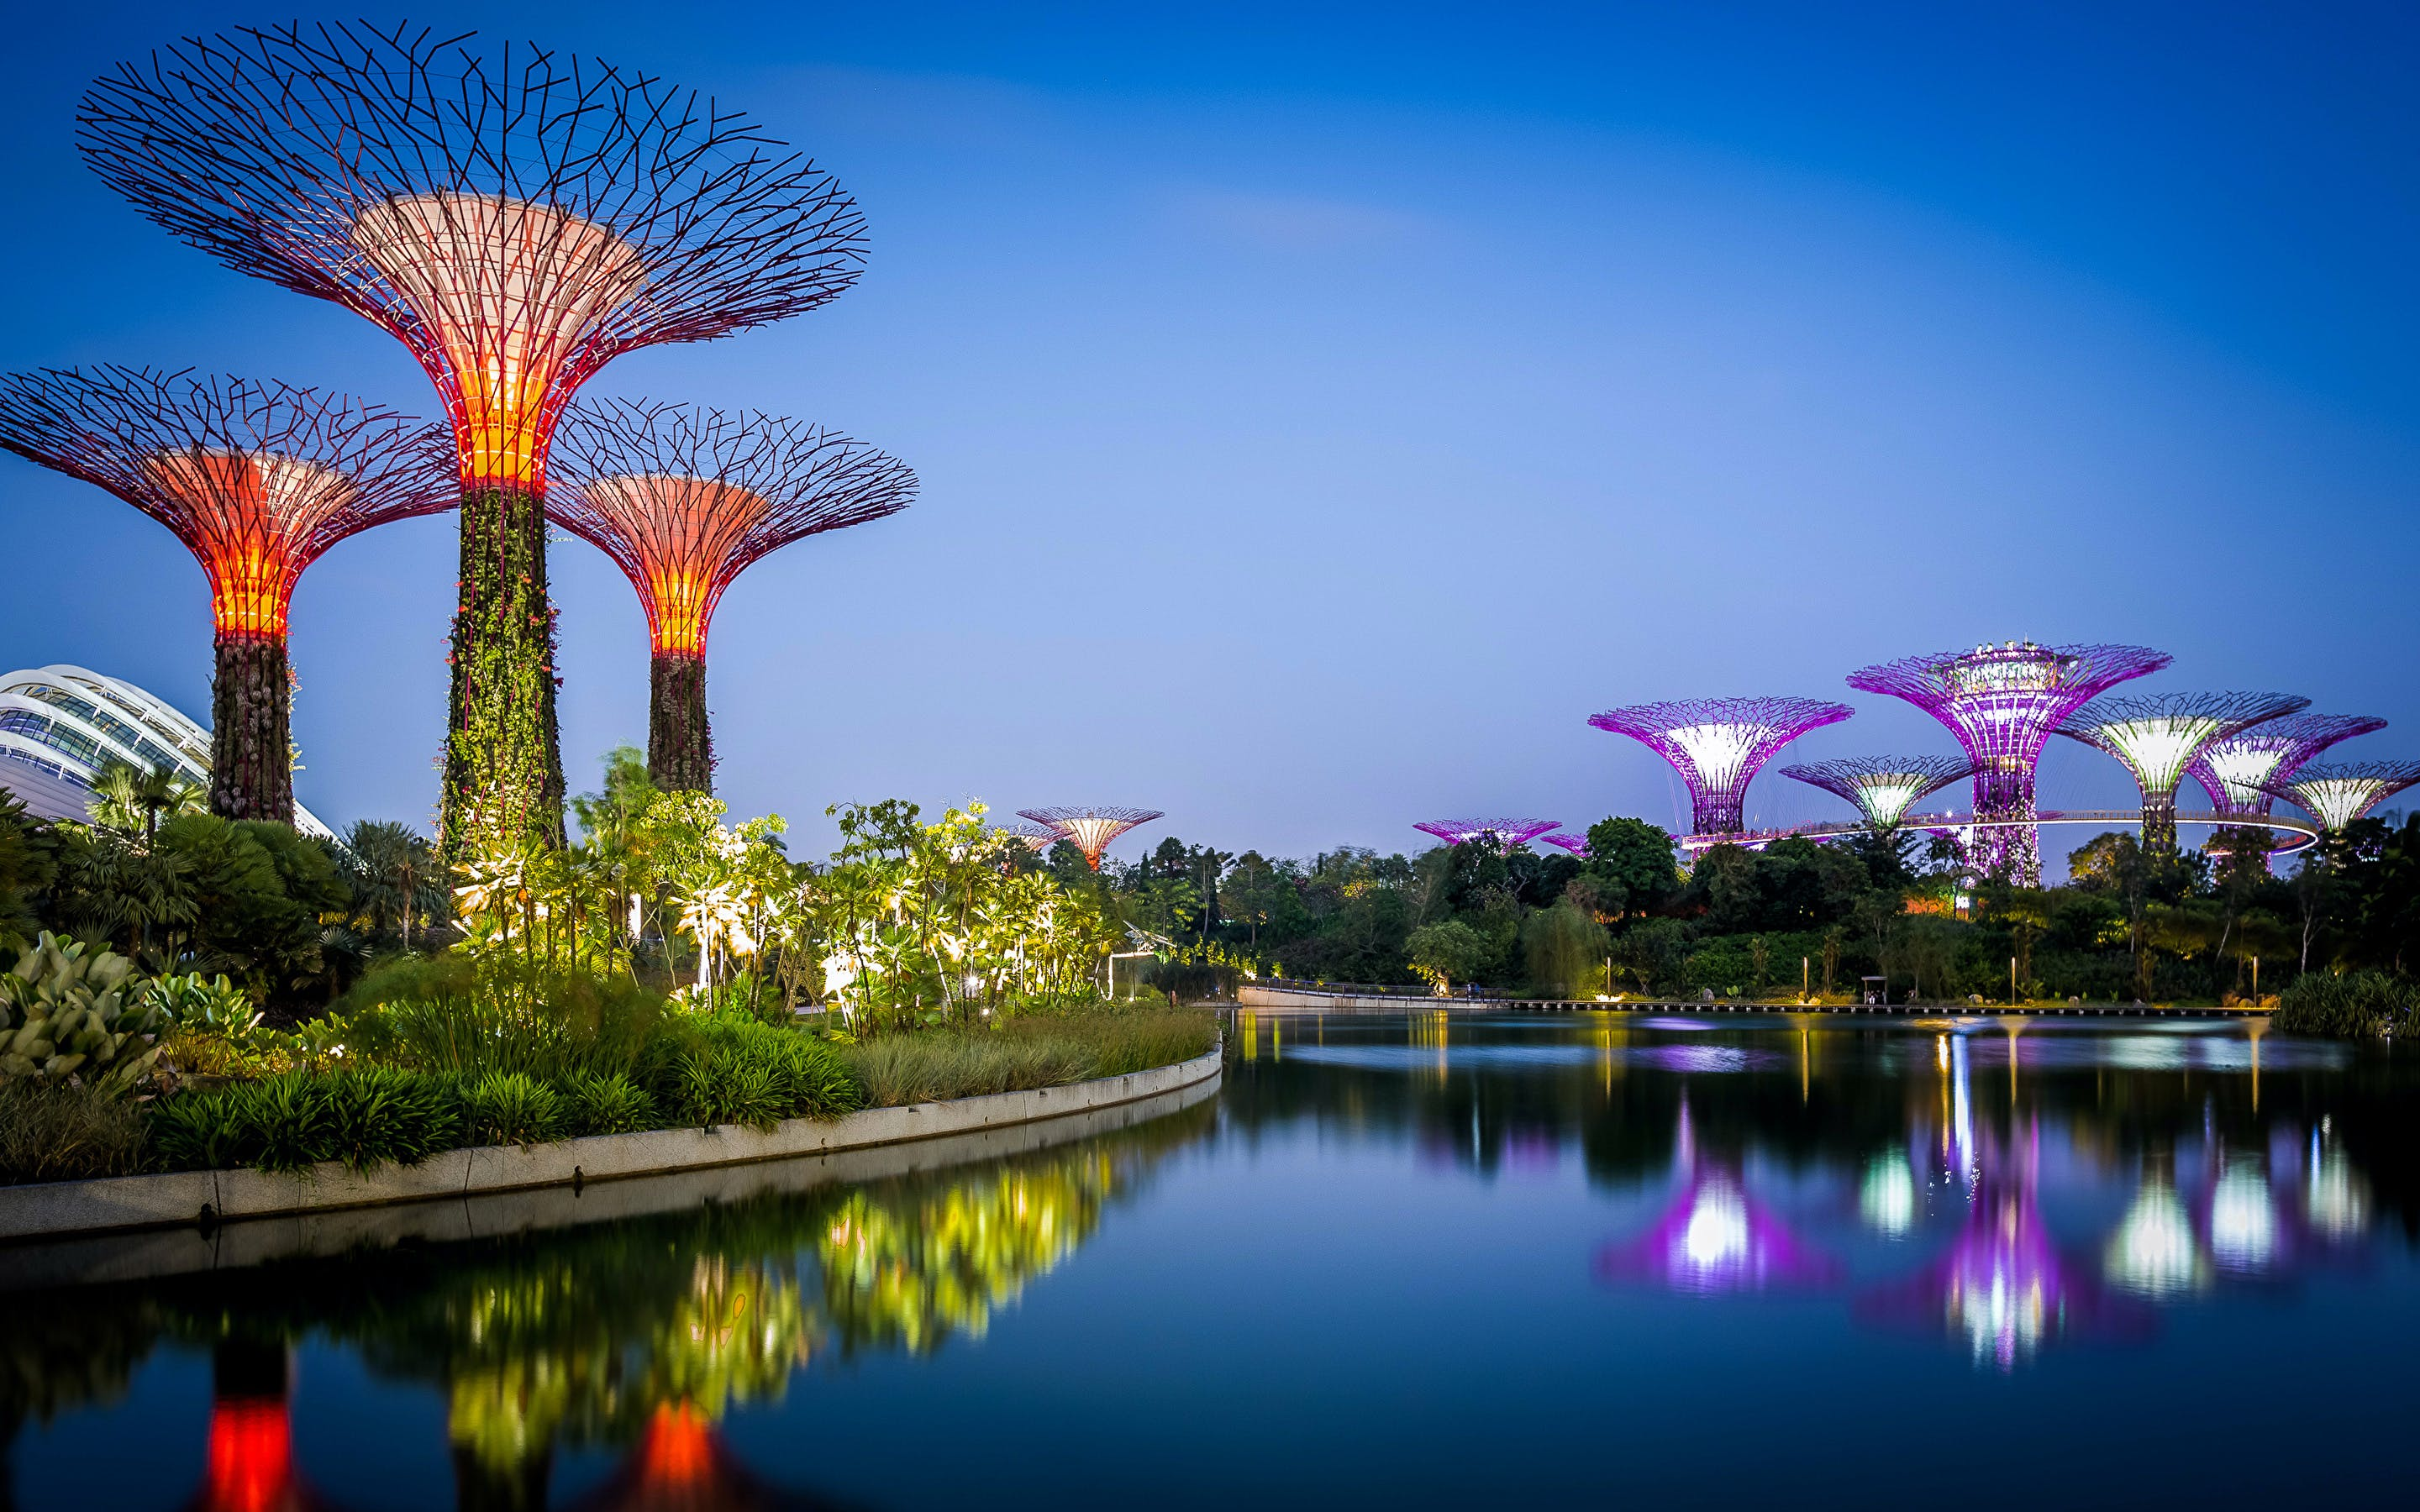 Gardens by the Bay: Skip the Line Tickets